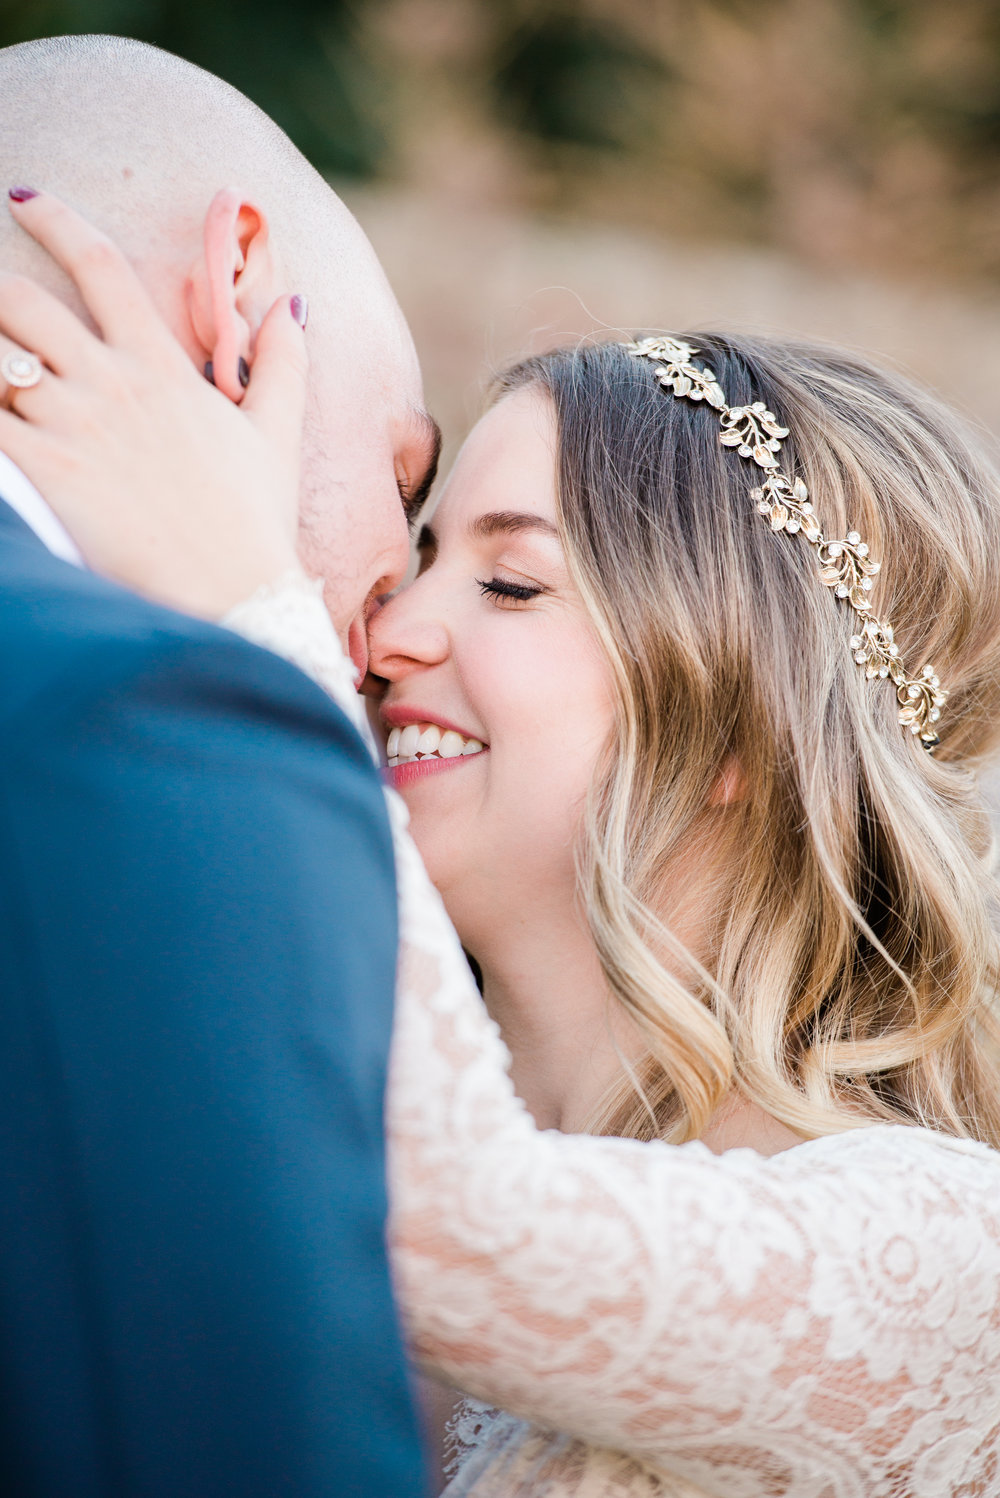 Every bride wantstomake sure she's gotthat newlywed glow on her wedding day. -